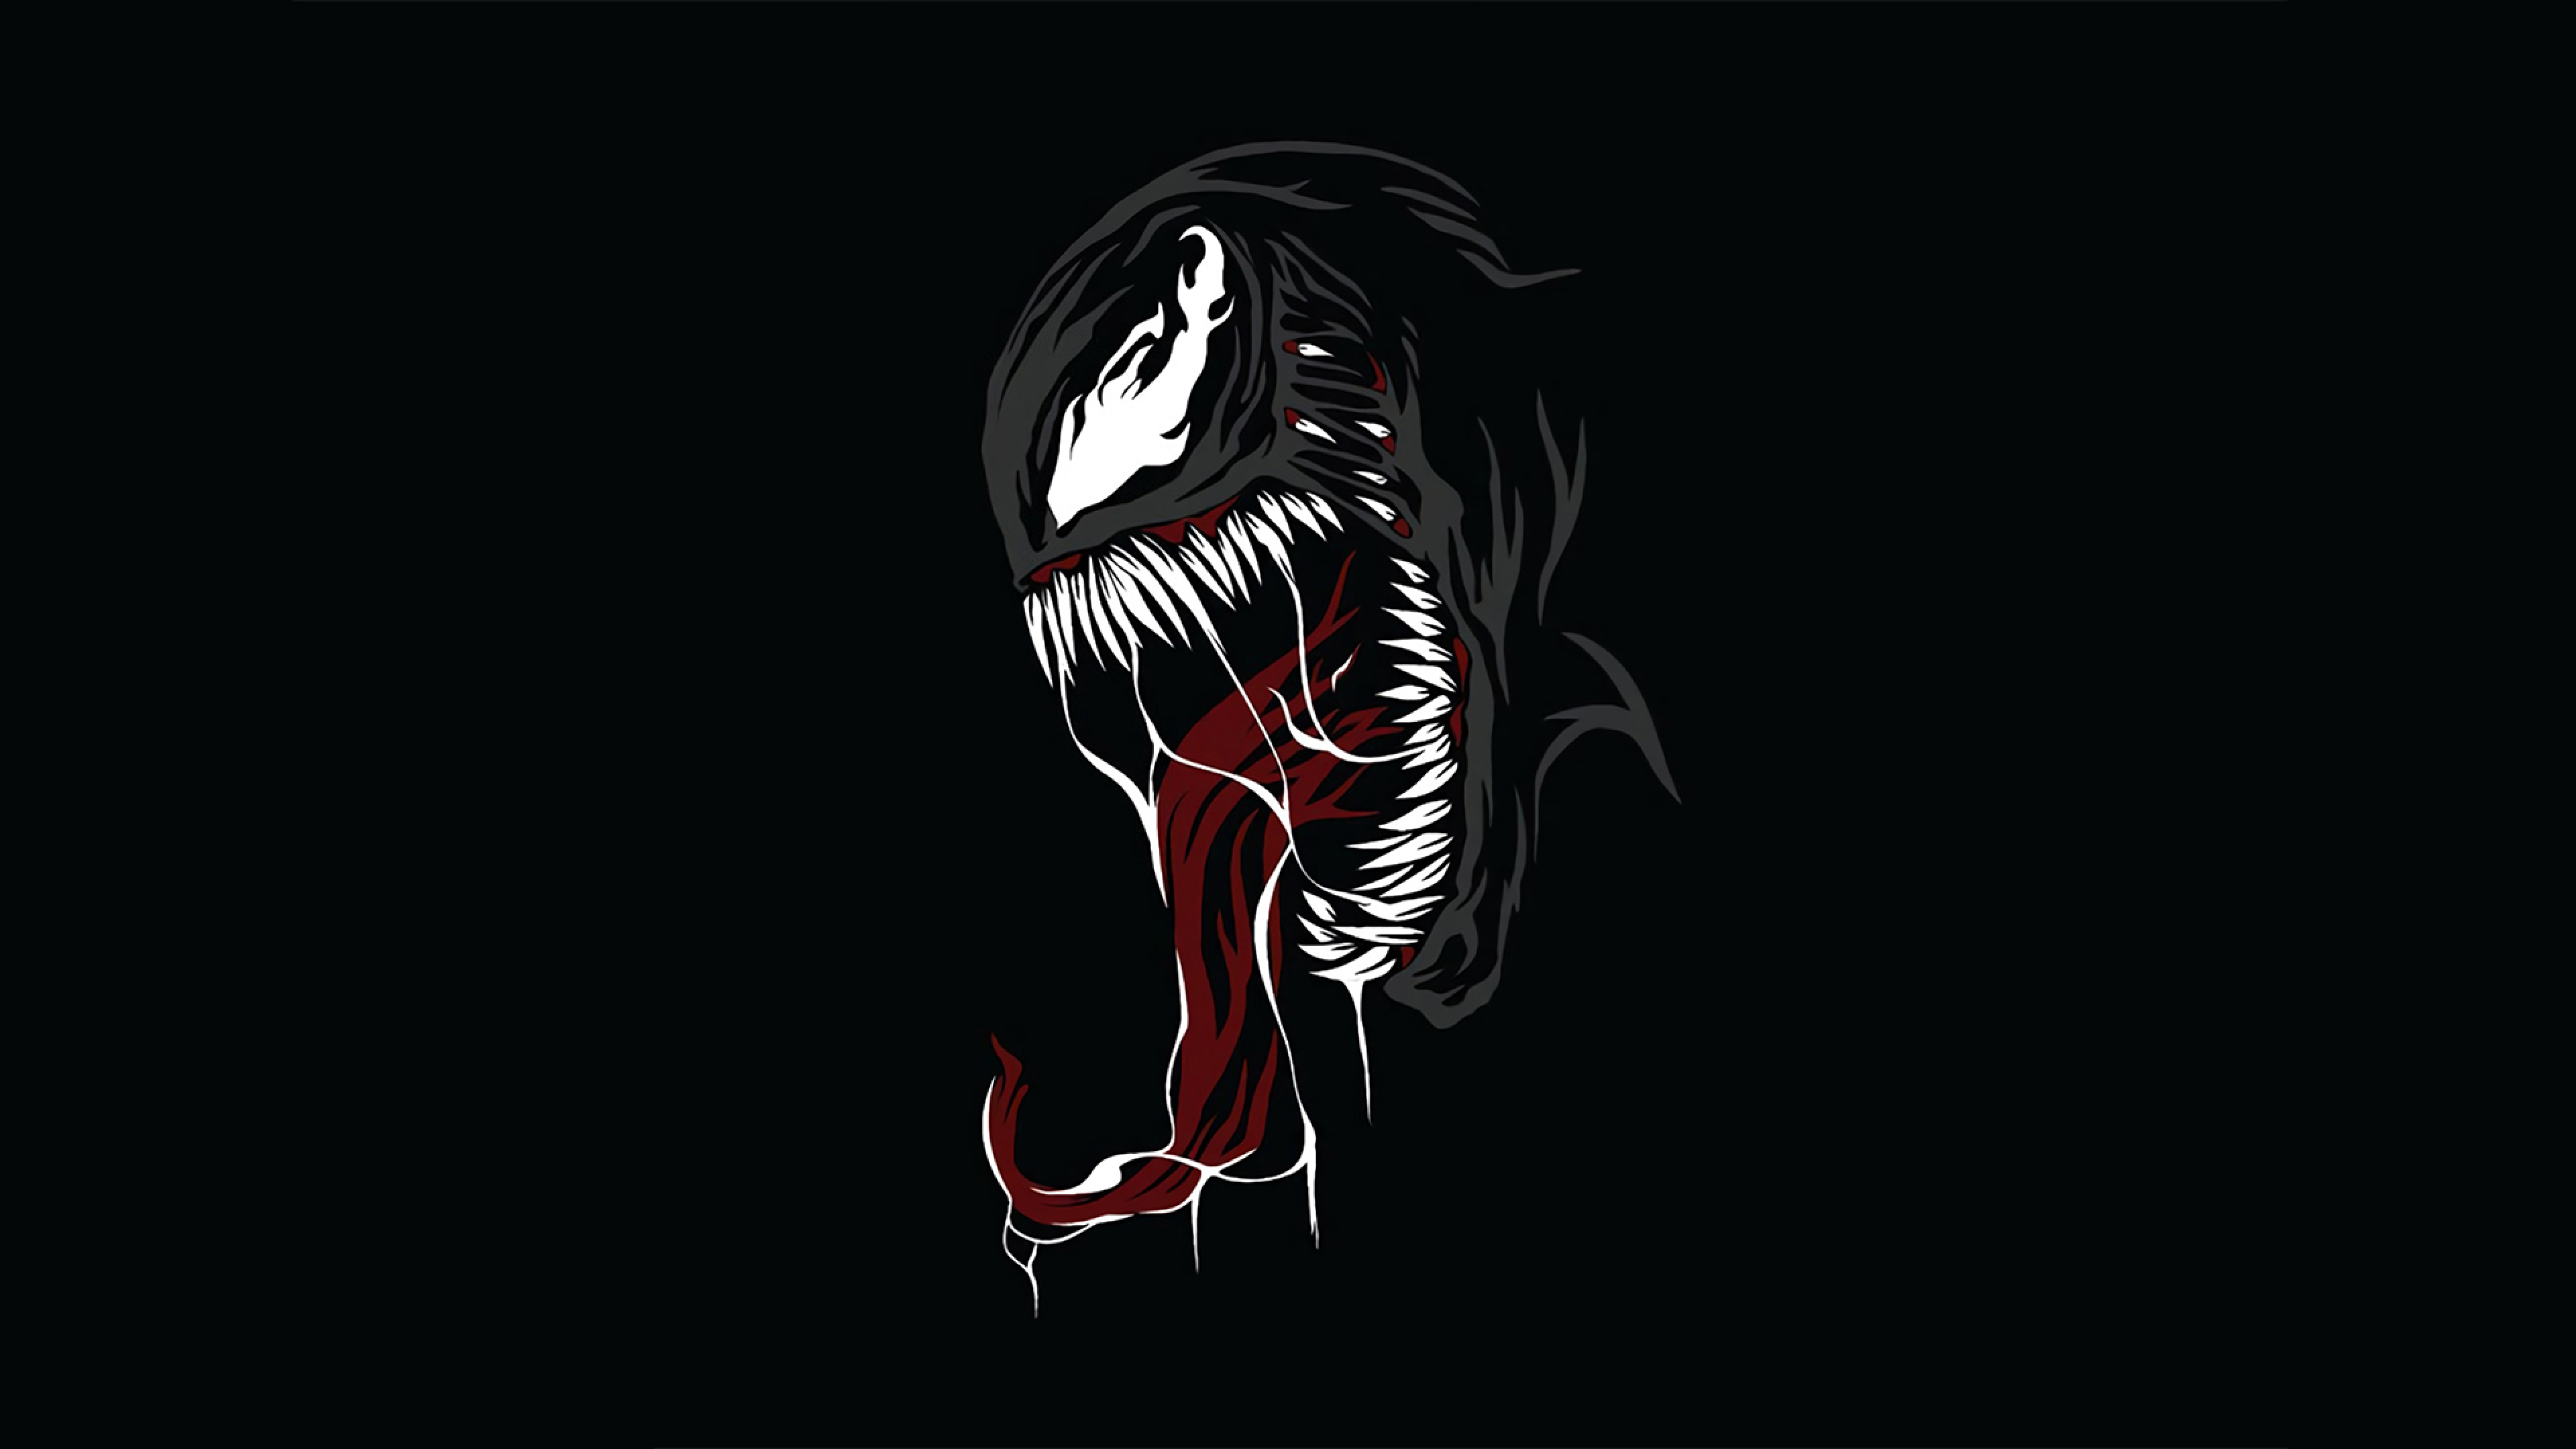 3840x2160 Venom Minimal 4k Wallpaper Hd Superheroes 4k Wallpapers Images Photos And Background